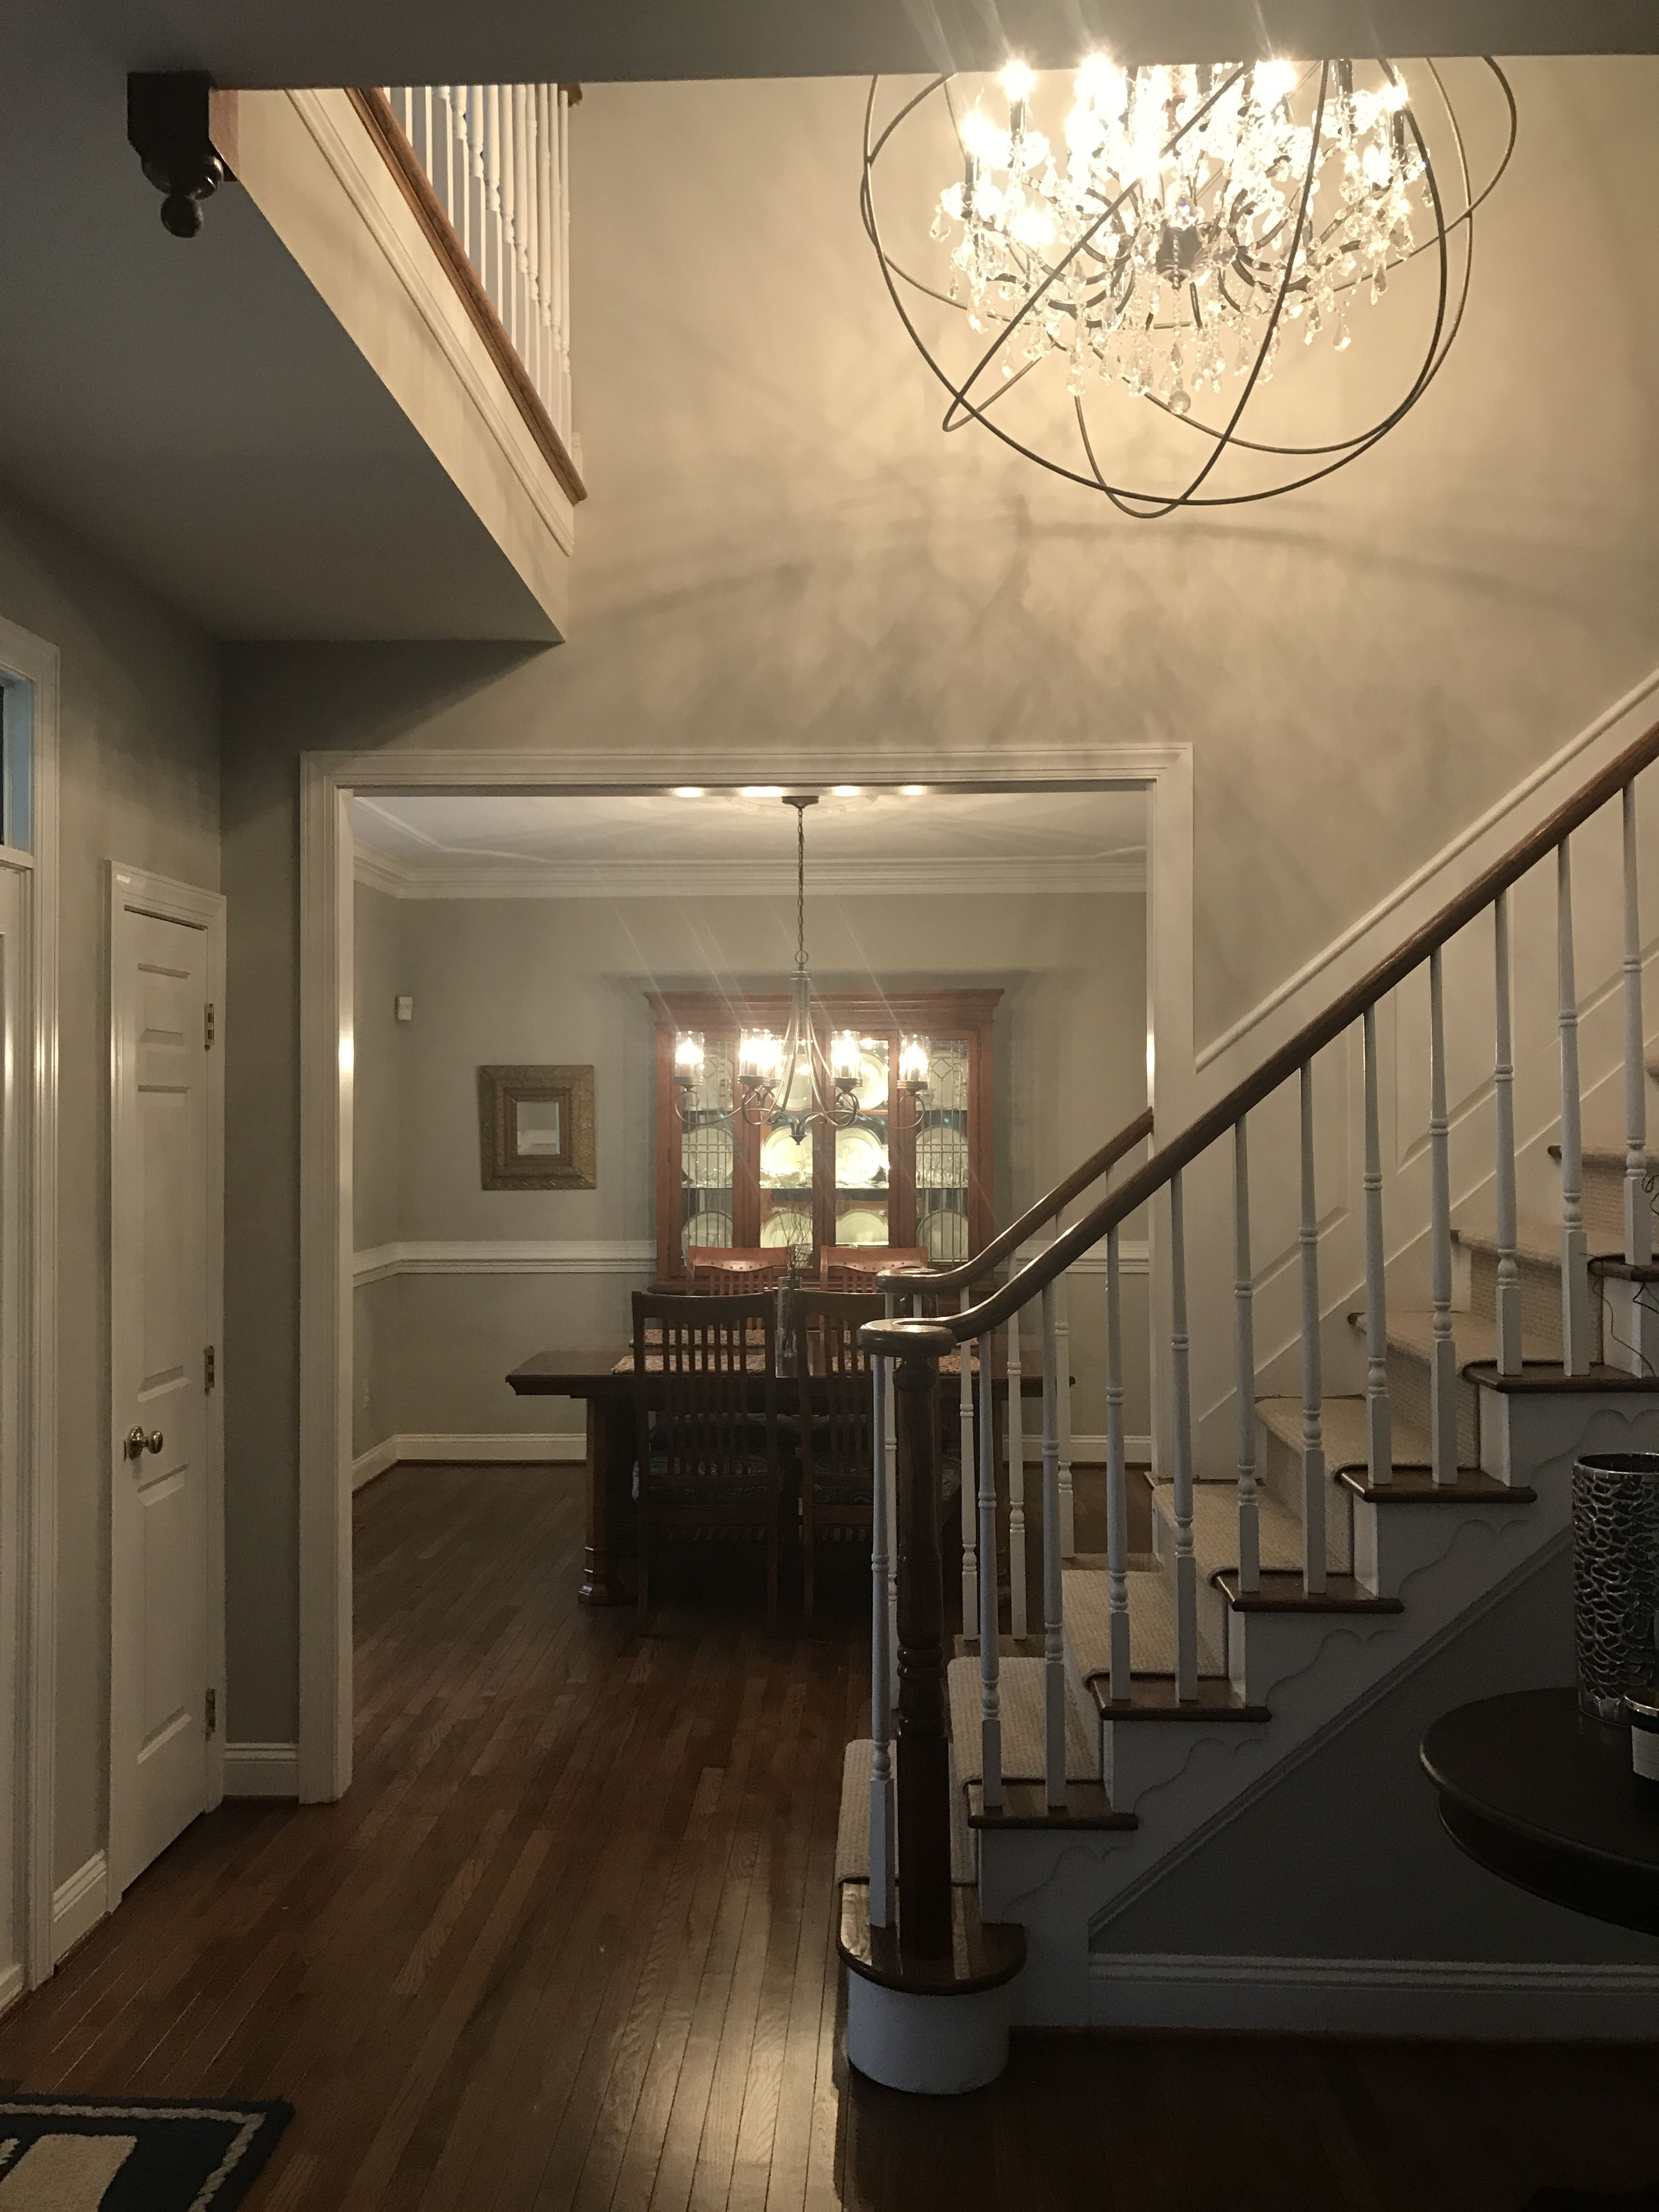 Best Paint Sherwin Williams Repose Grey Chandelier Restoration Hardware Banister Minwax Bombay M 400 x 300